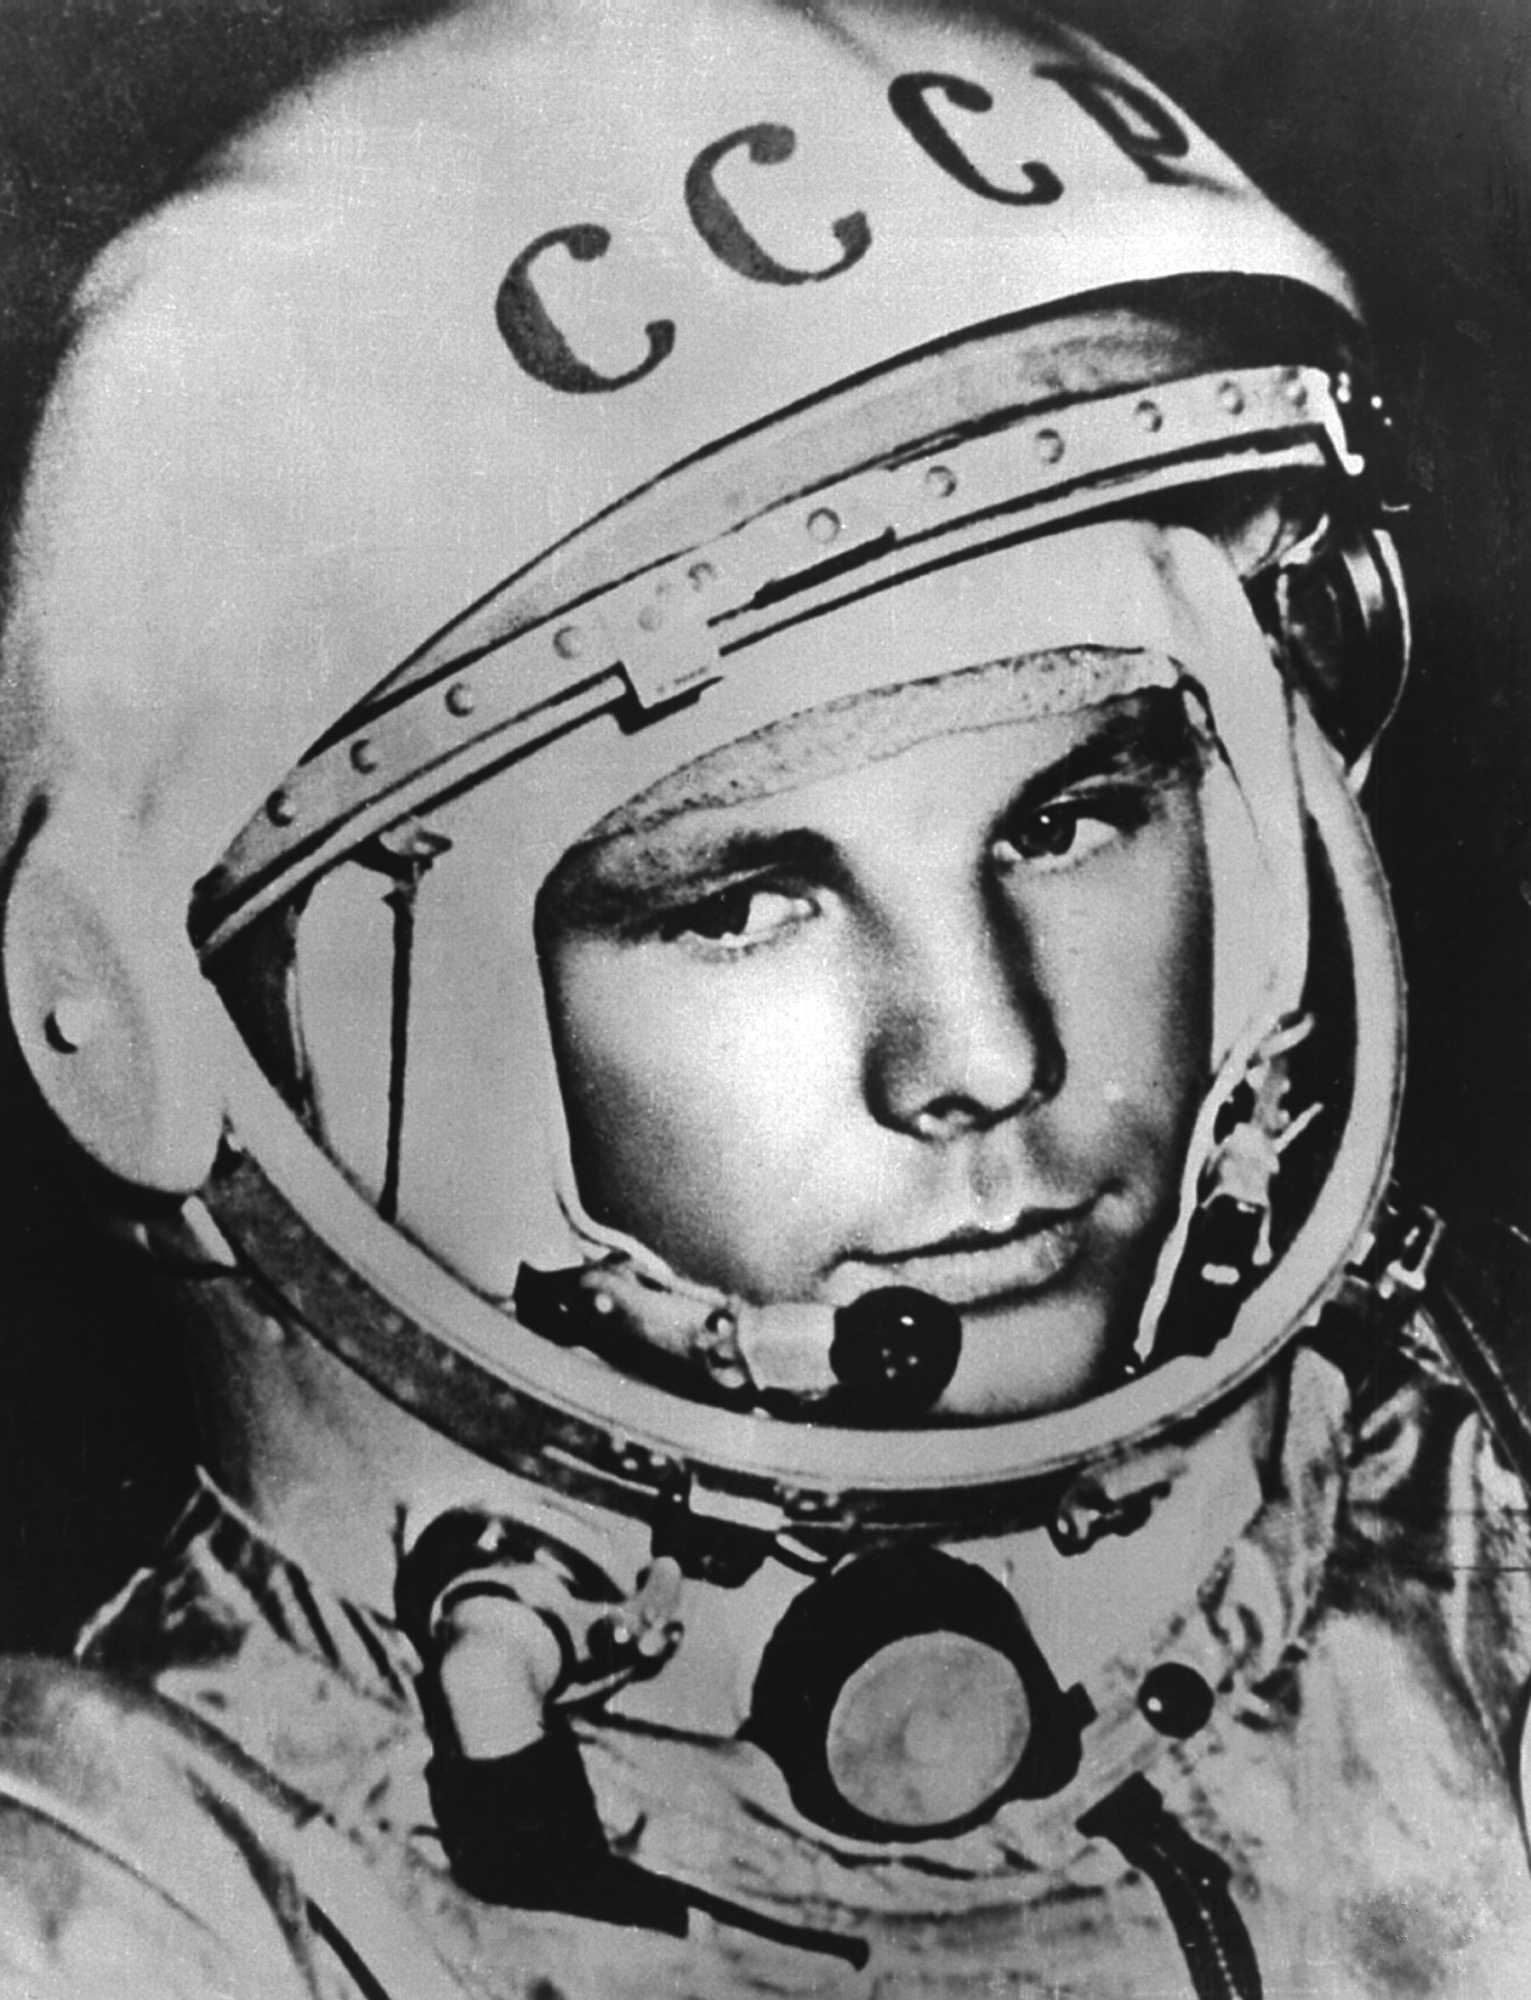 On 12 April 1961, Russian cosmonaut Yuri Gagarin became the first human to travel into space when he launched into orbit on the Vostok 3KA-3 spacecraft (Vostok 1).